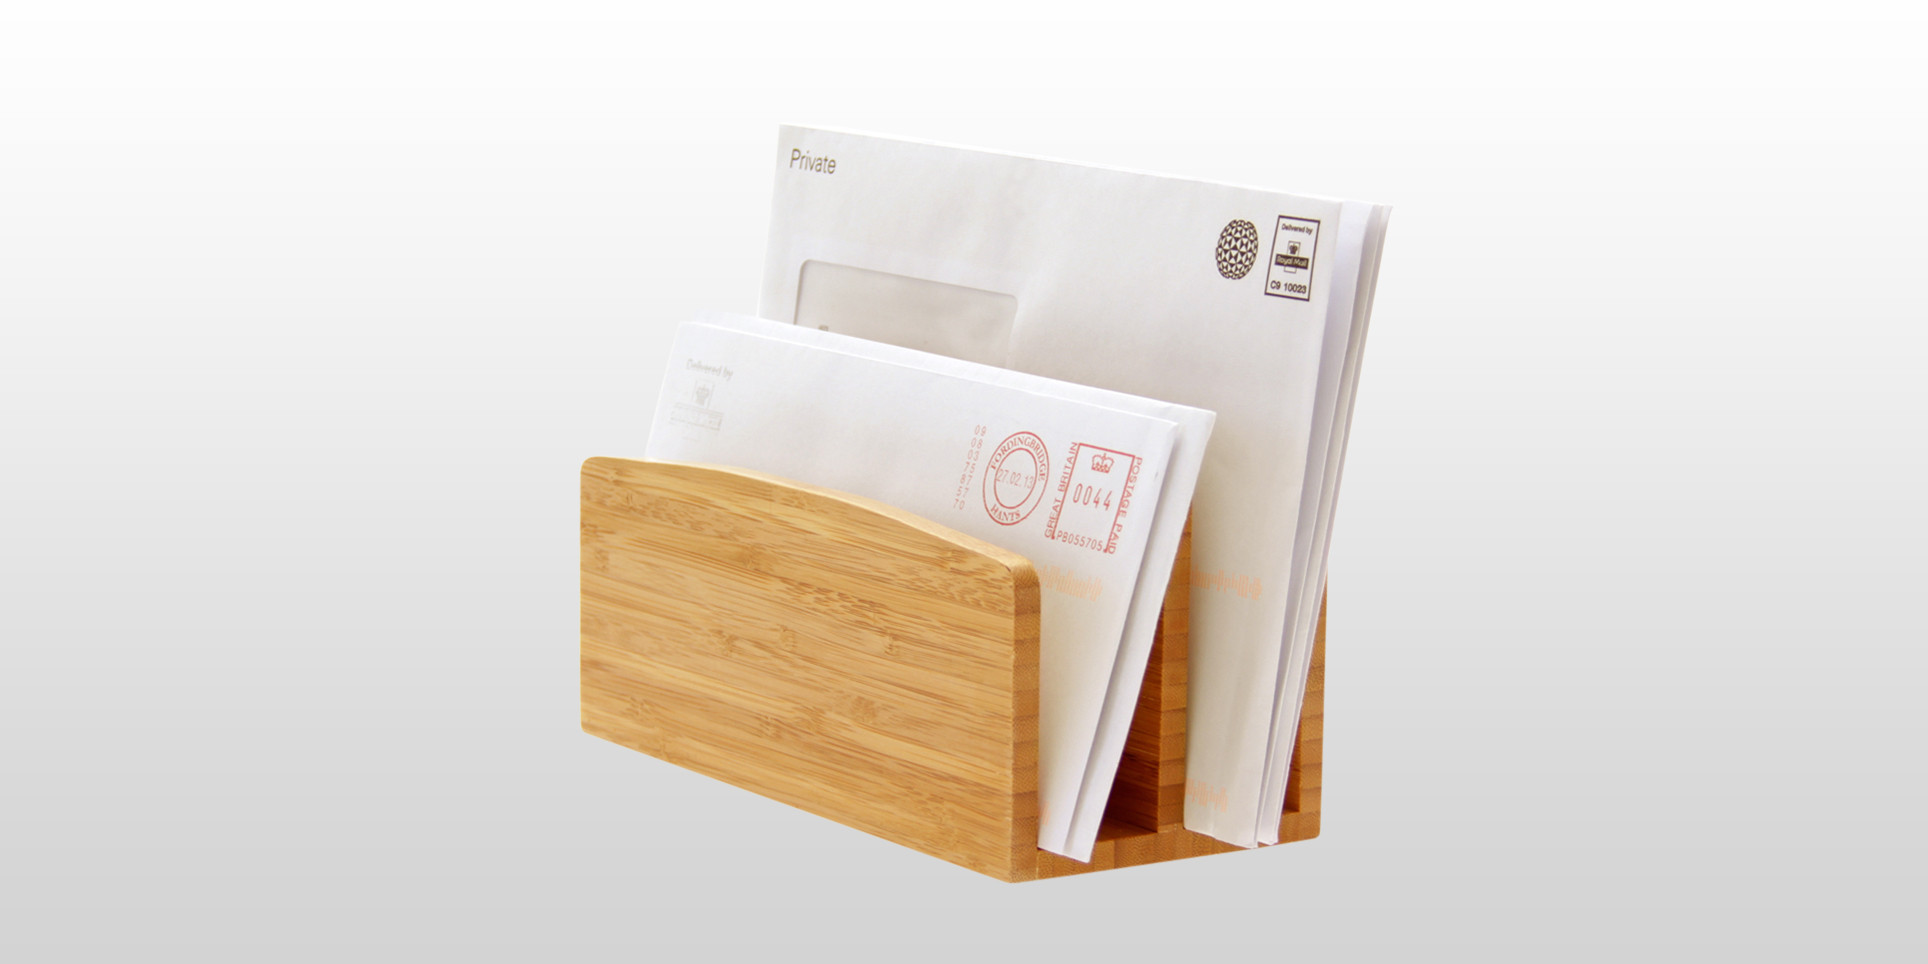 How To Make A Letter Holder At Home